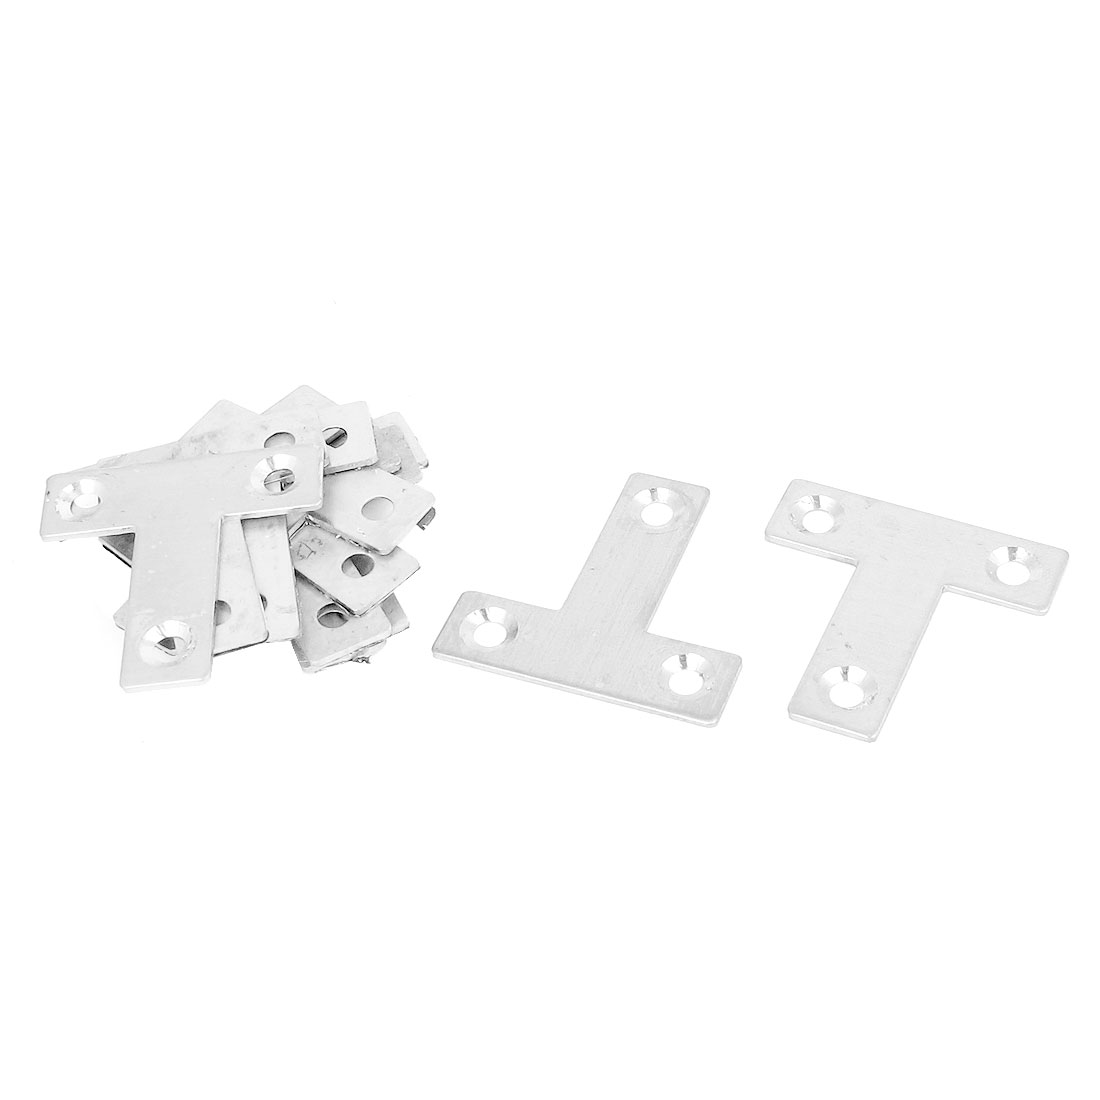 40mmx40mm Flat T Shape Corner Brace Mending Plate Angle Bracket 10PCS